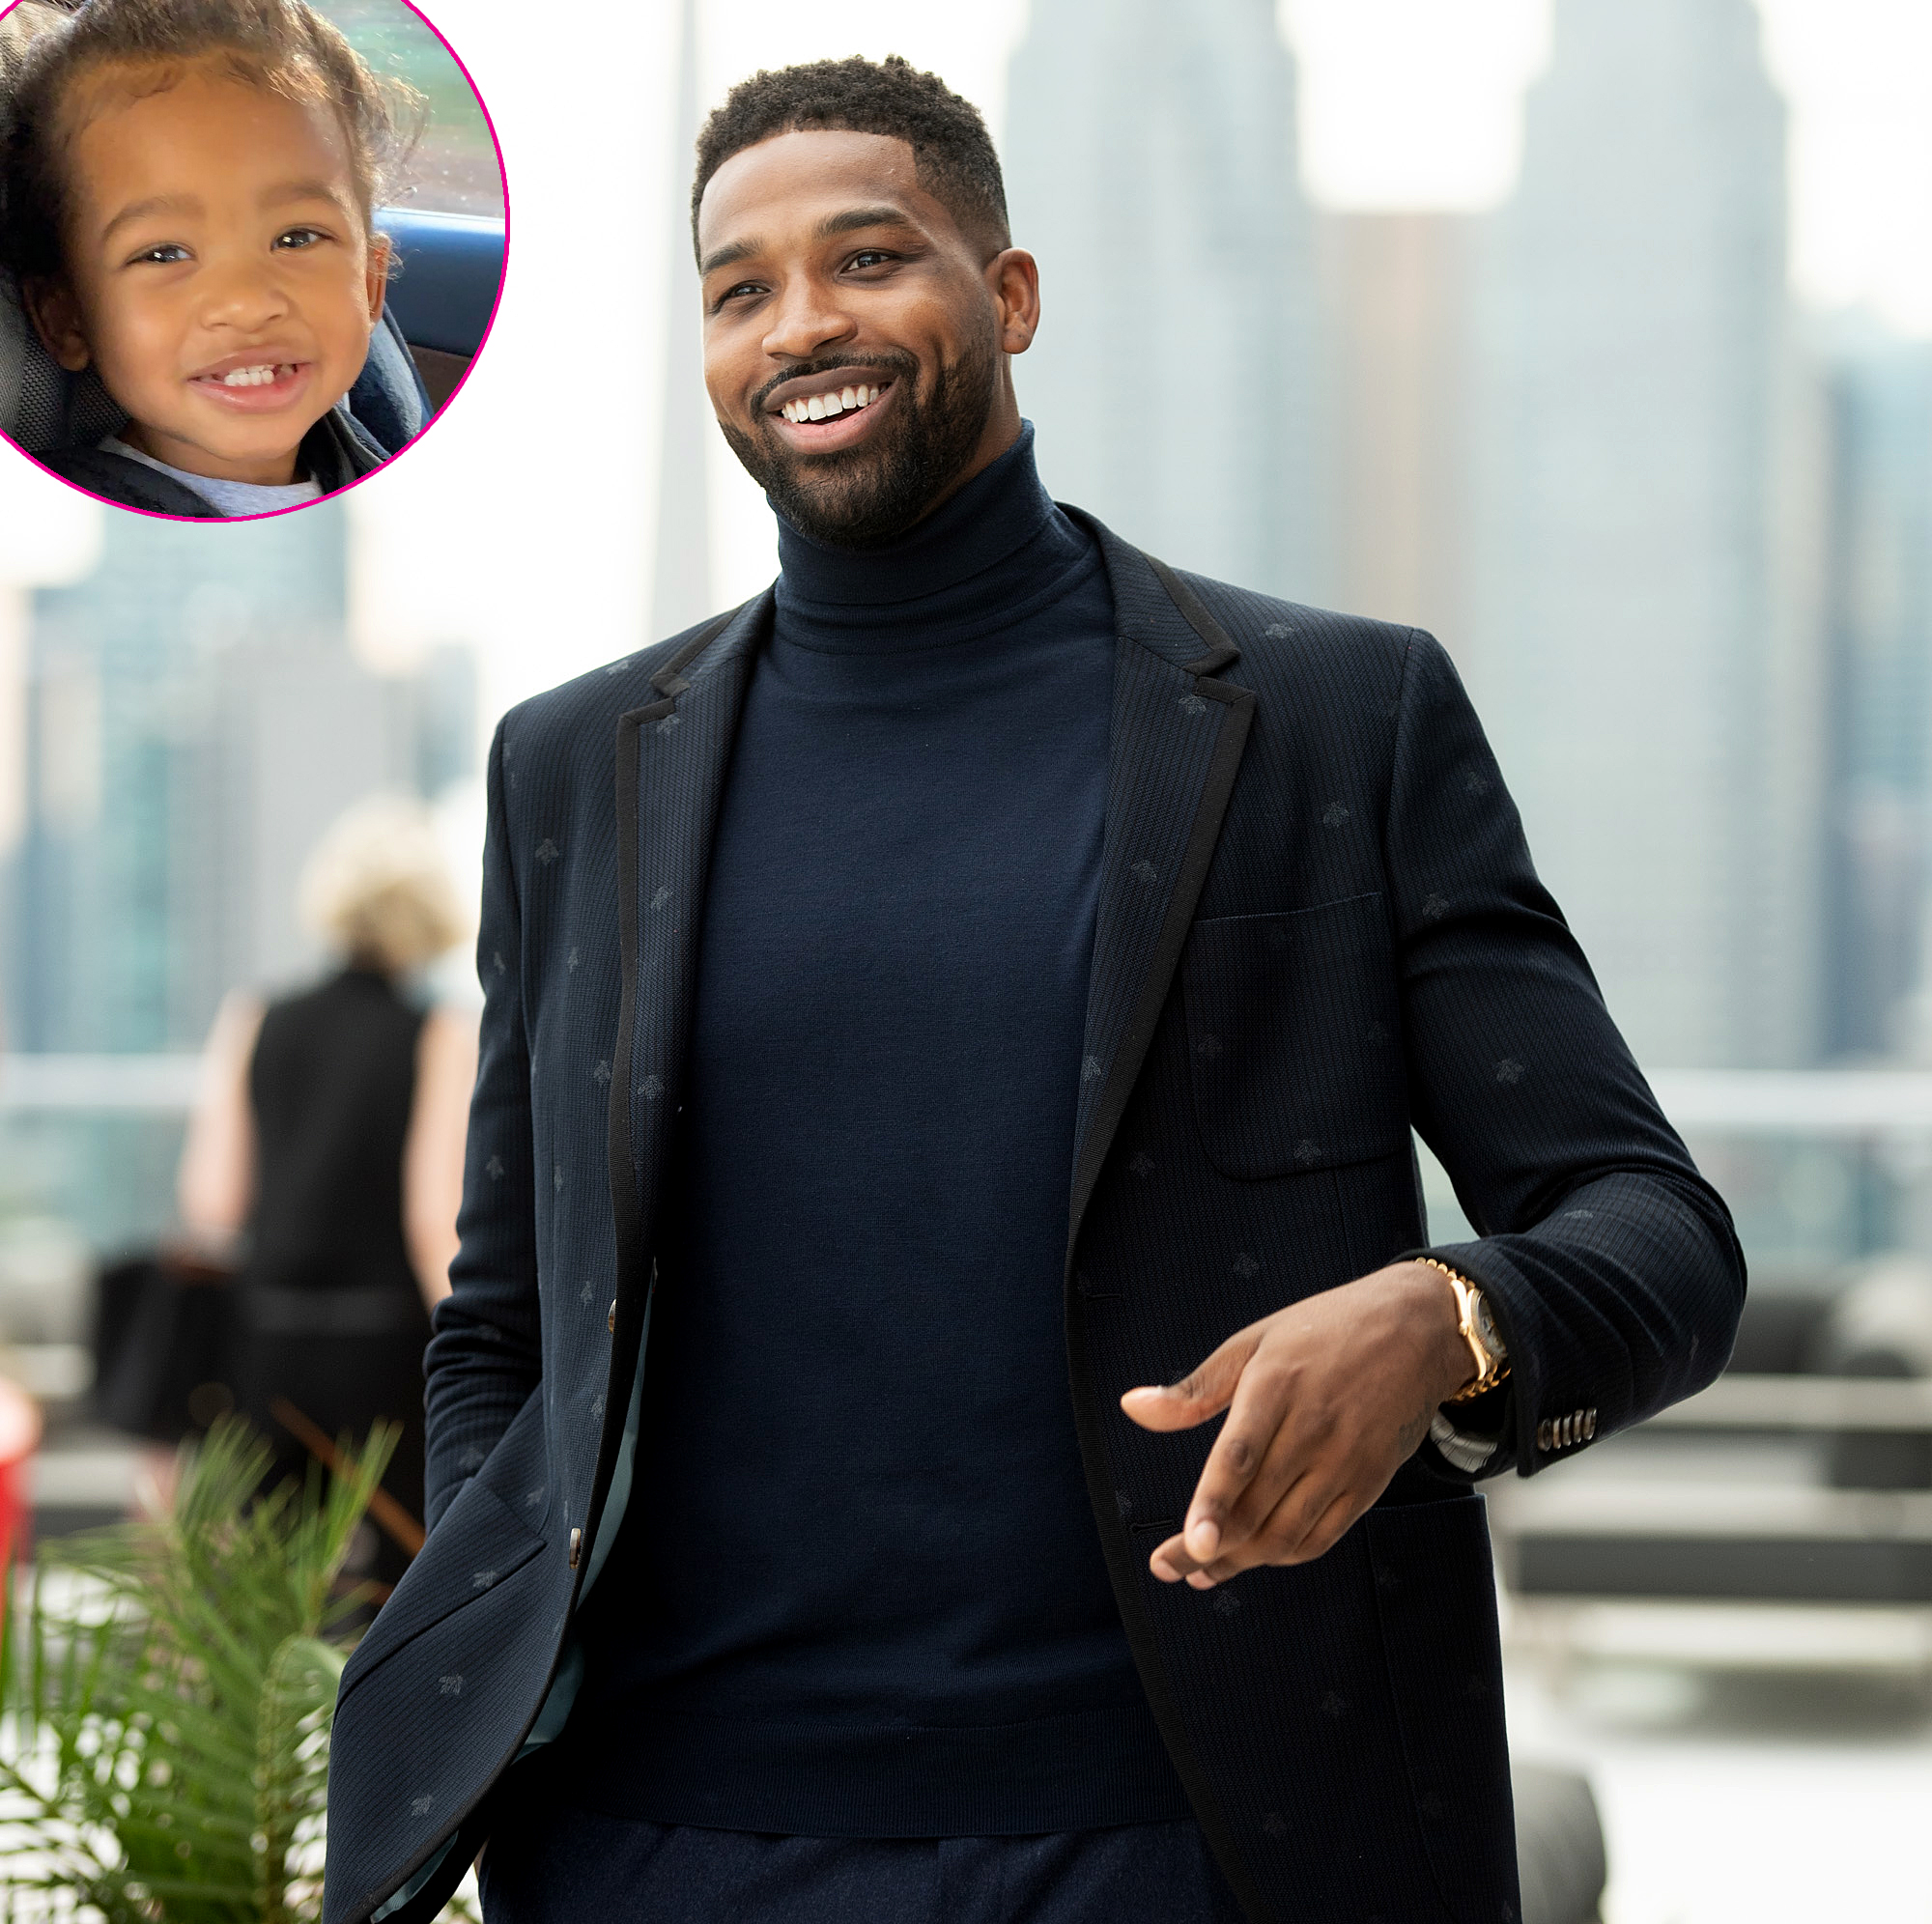 Tristan Thompson Shows Love To His Boy, Prince For His Birthday - Here's The Proud Dad's Message